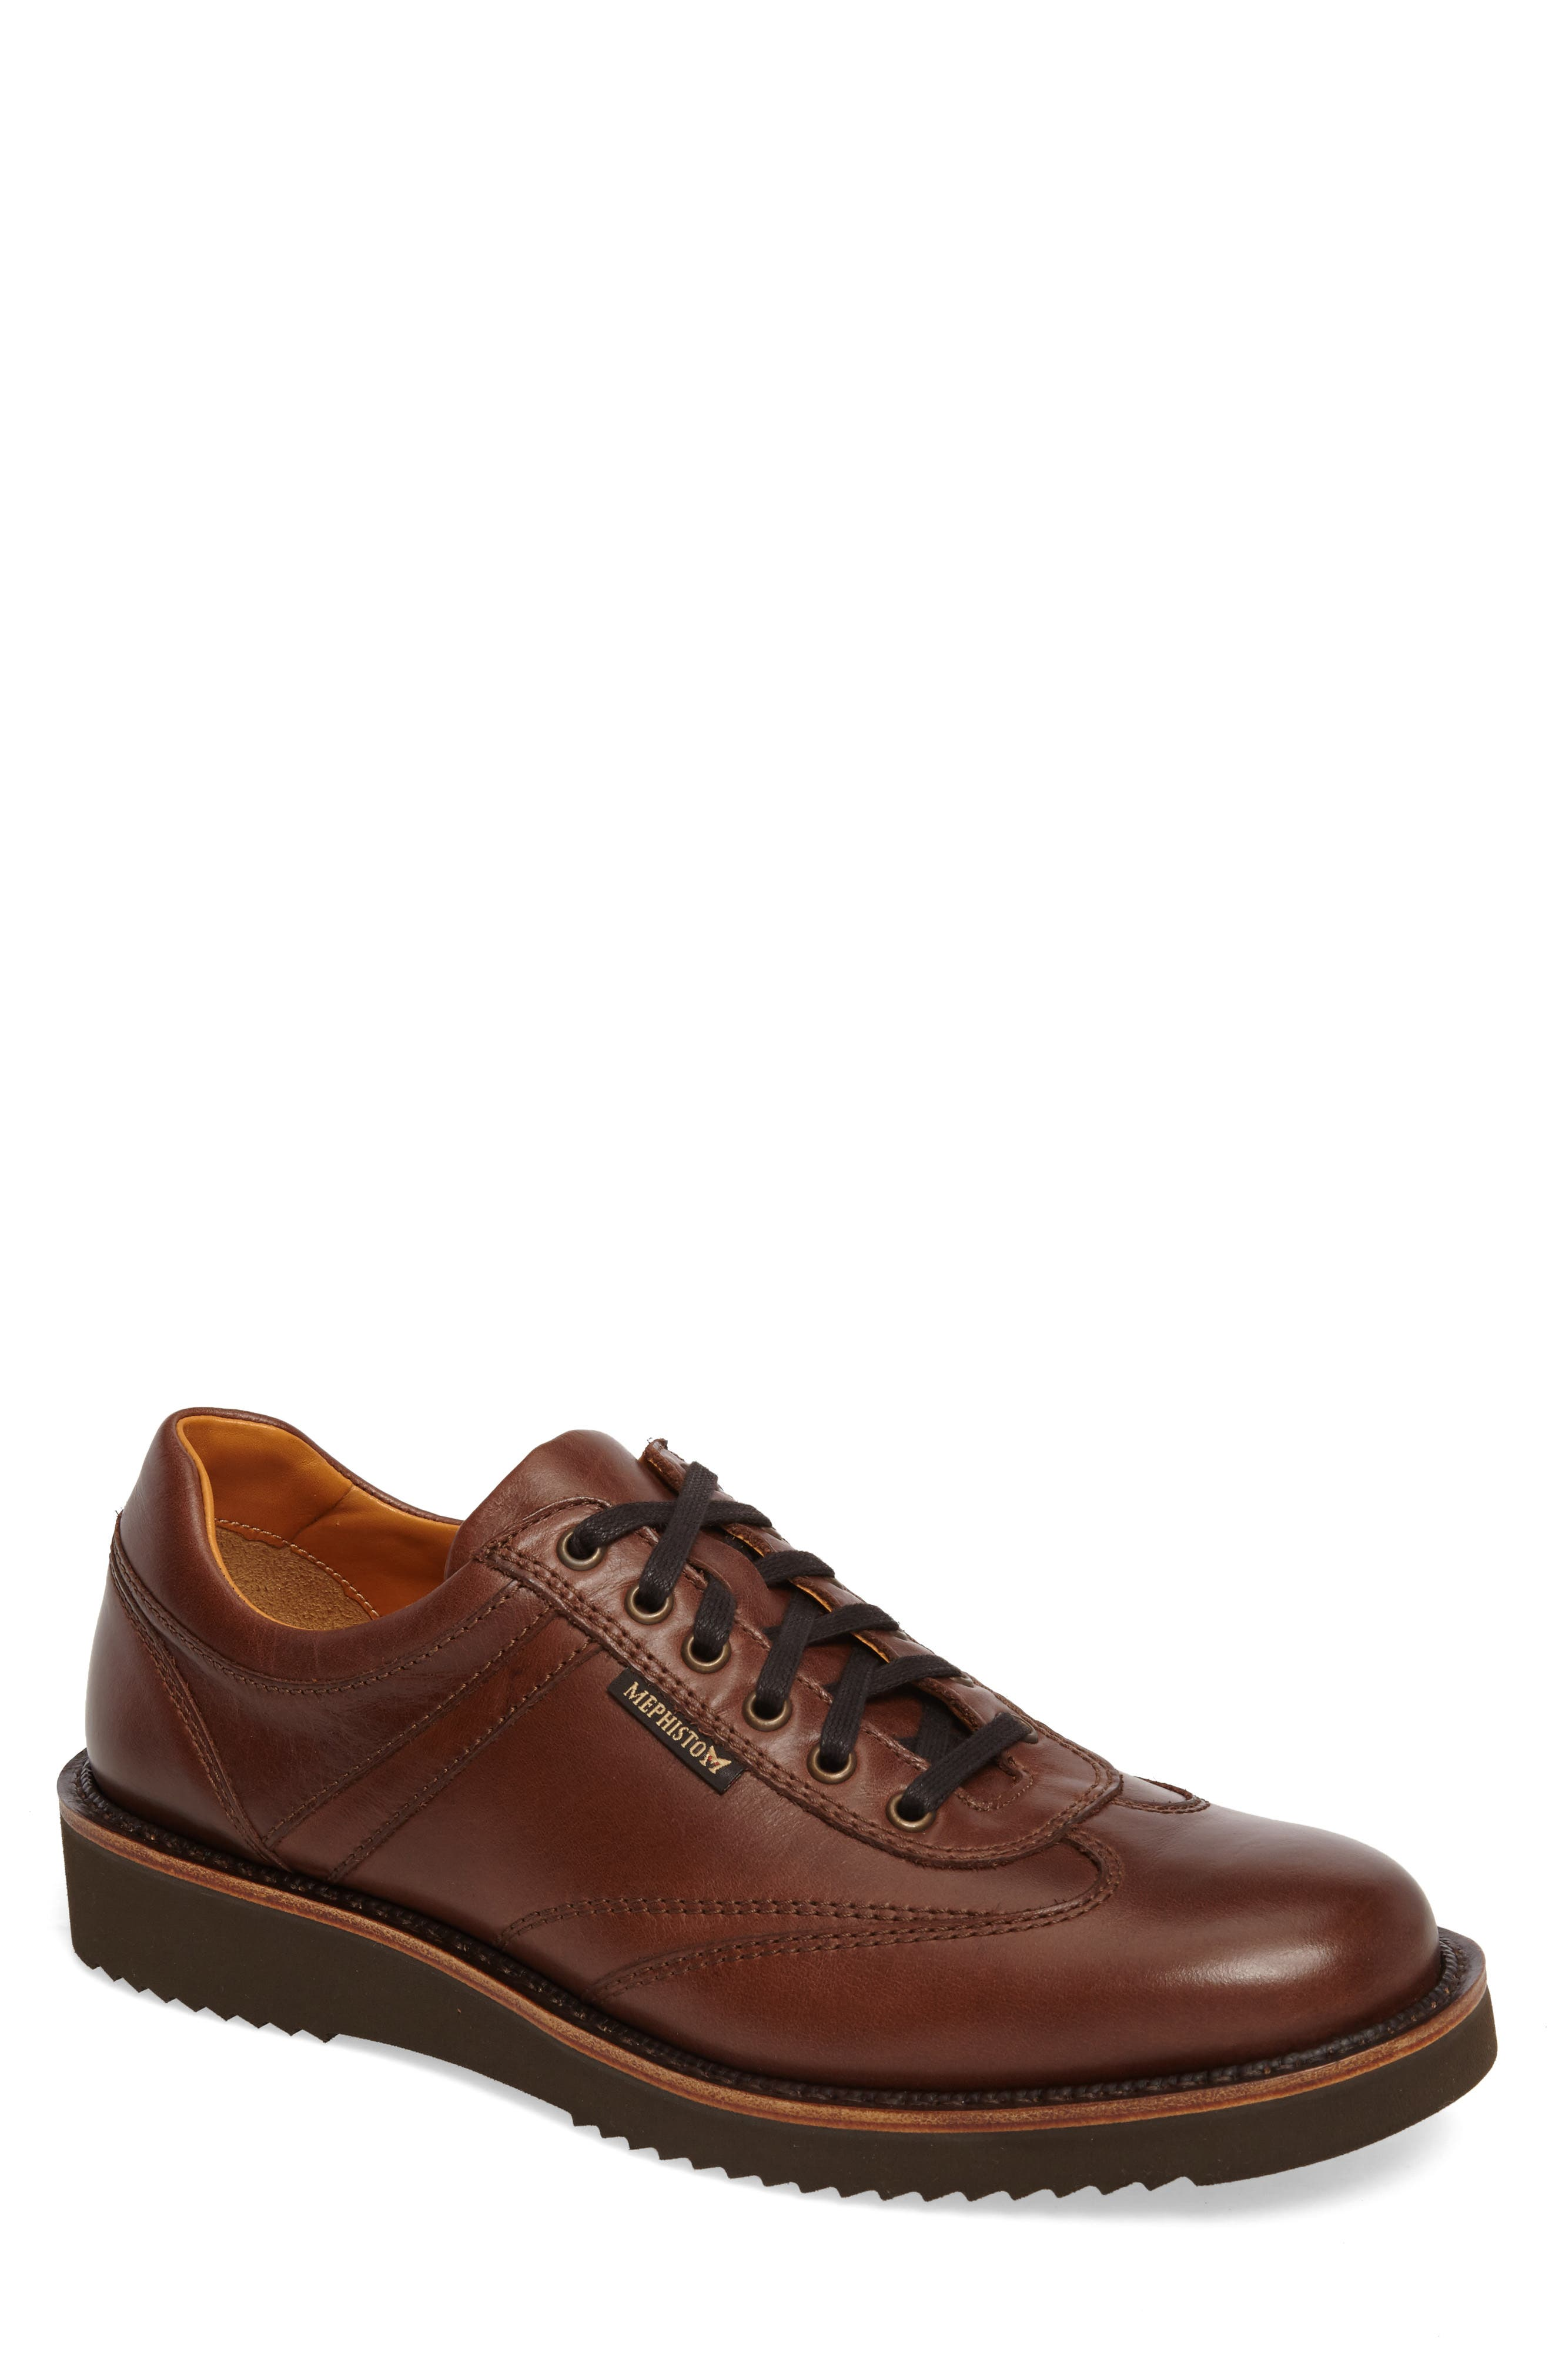 MEPHISTO Adriano Sneaker, Main, color, CHESTNUT LEATHER